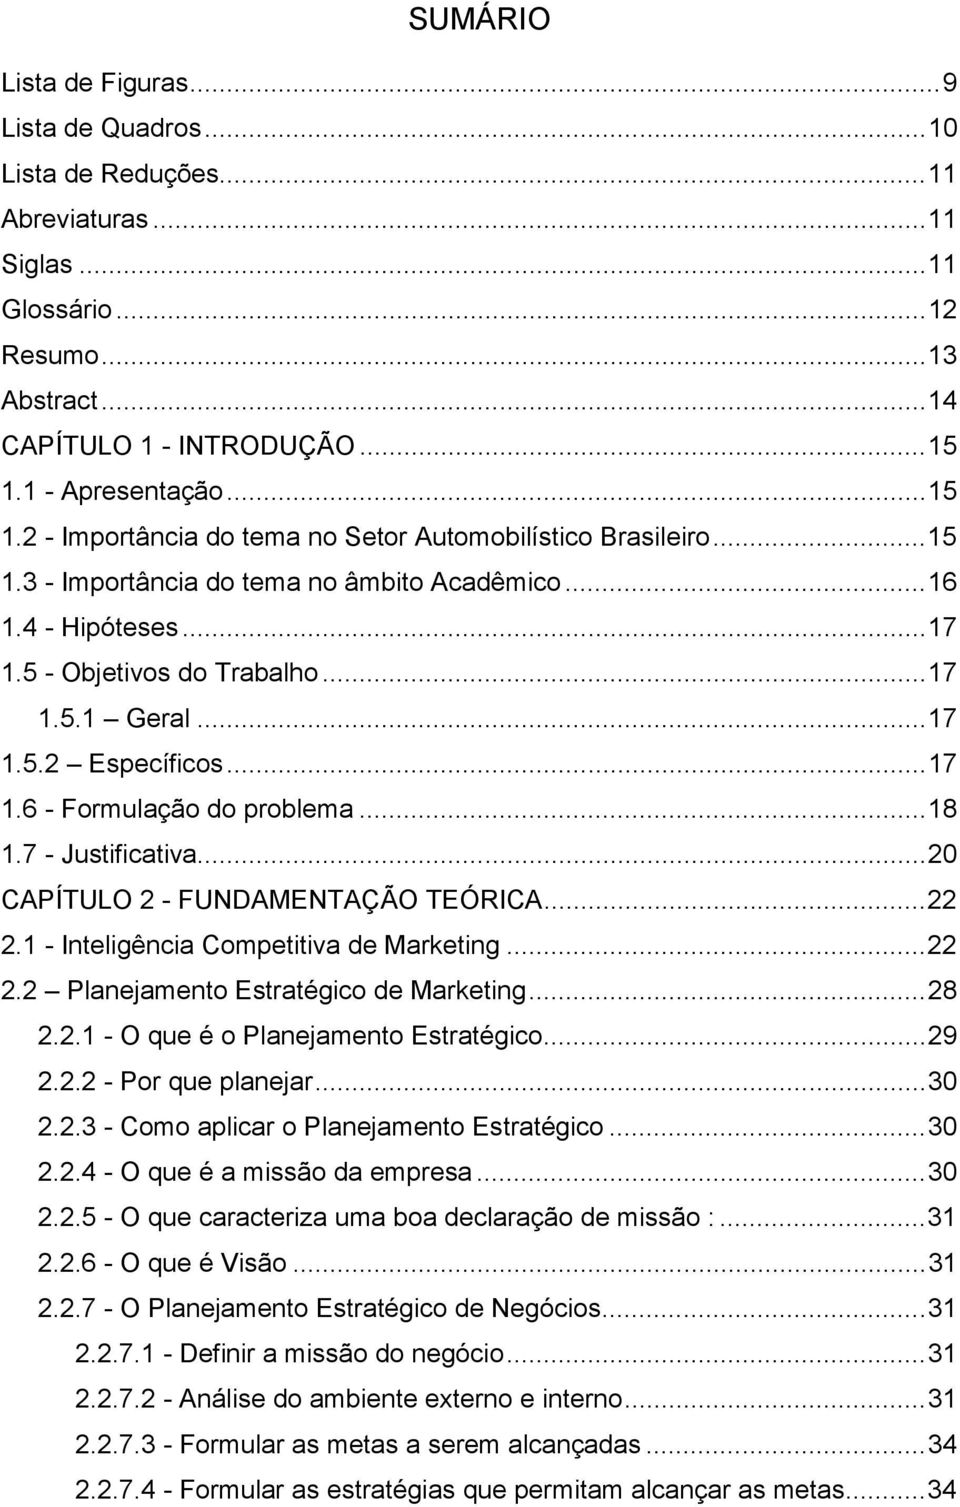 ..17 1.5.2 Específicos...17 1.6 - Formulação do problema...18 1.7 - Justificativa...20 CAPÍTULO 2 - FUNDAMENTAÇÃO TEÓRICA...22 2.1 - Inteligência Competitiva de Marketing...22 2.2 Planejamento Estratégico de Marketing.